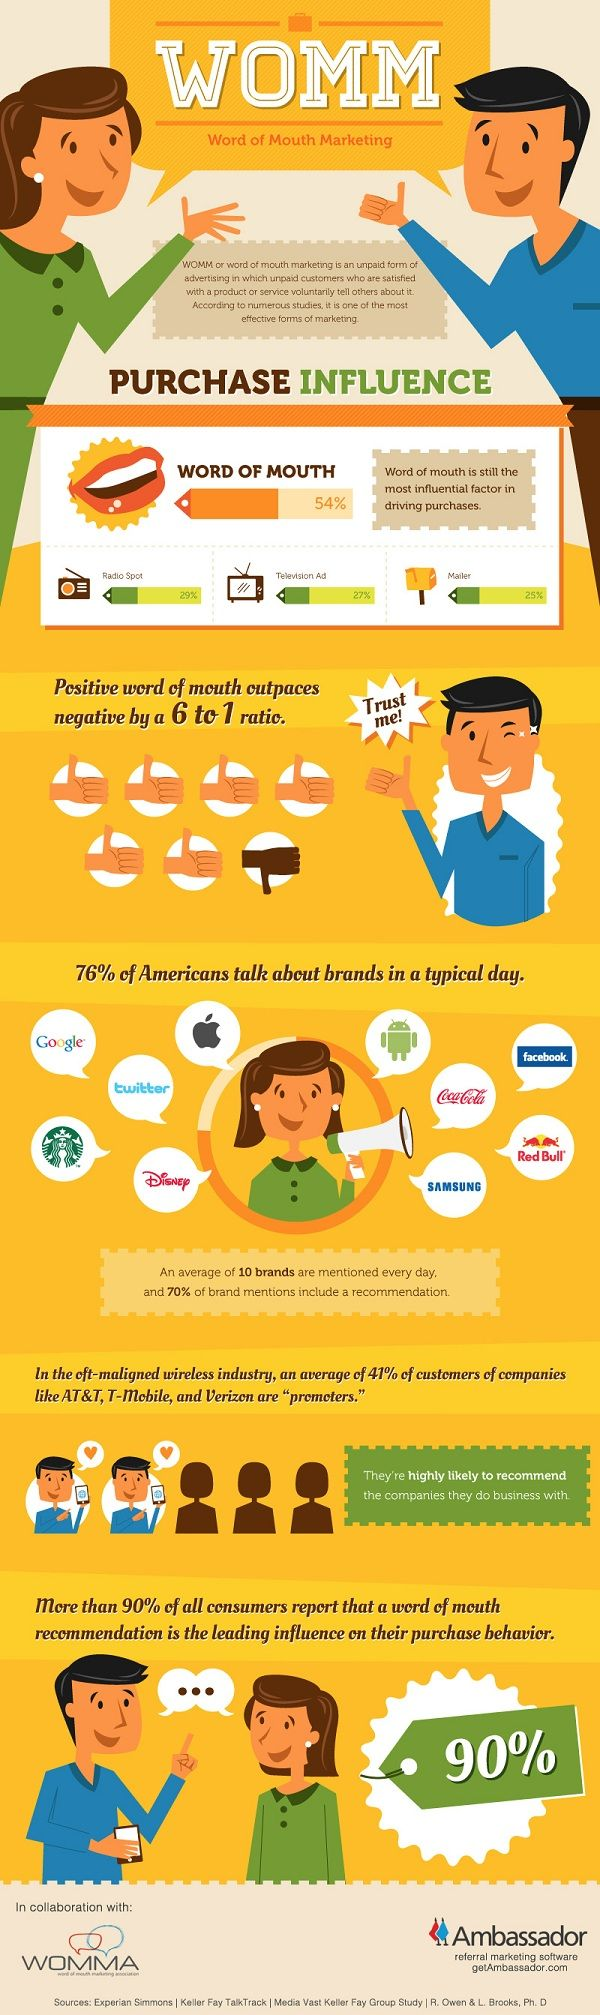 #Infographic - WOMM: Word Of Mouth Marketing and Influence